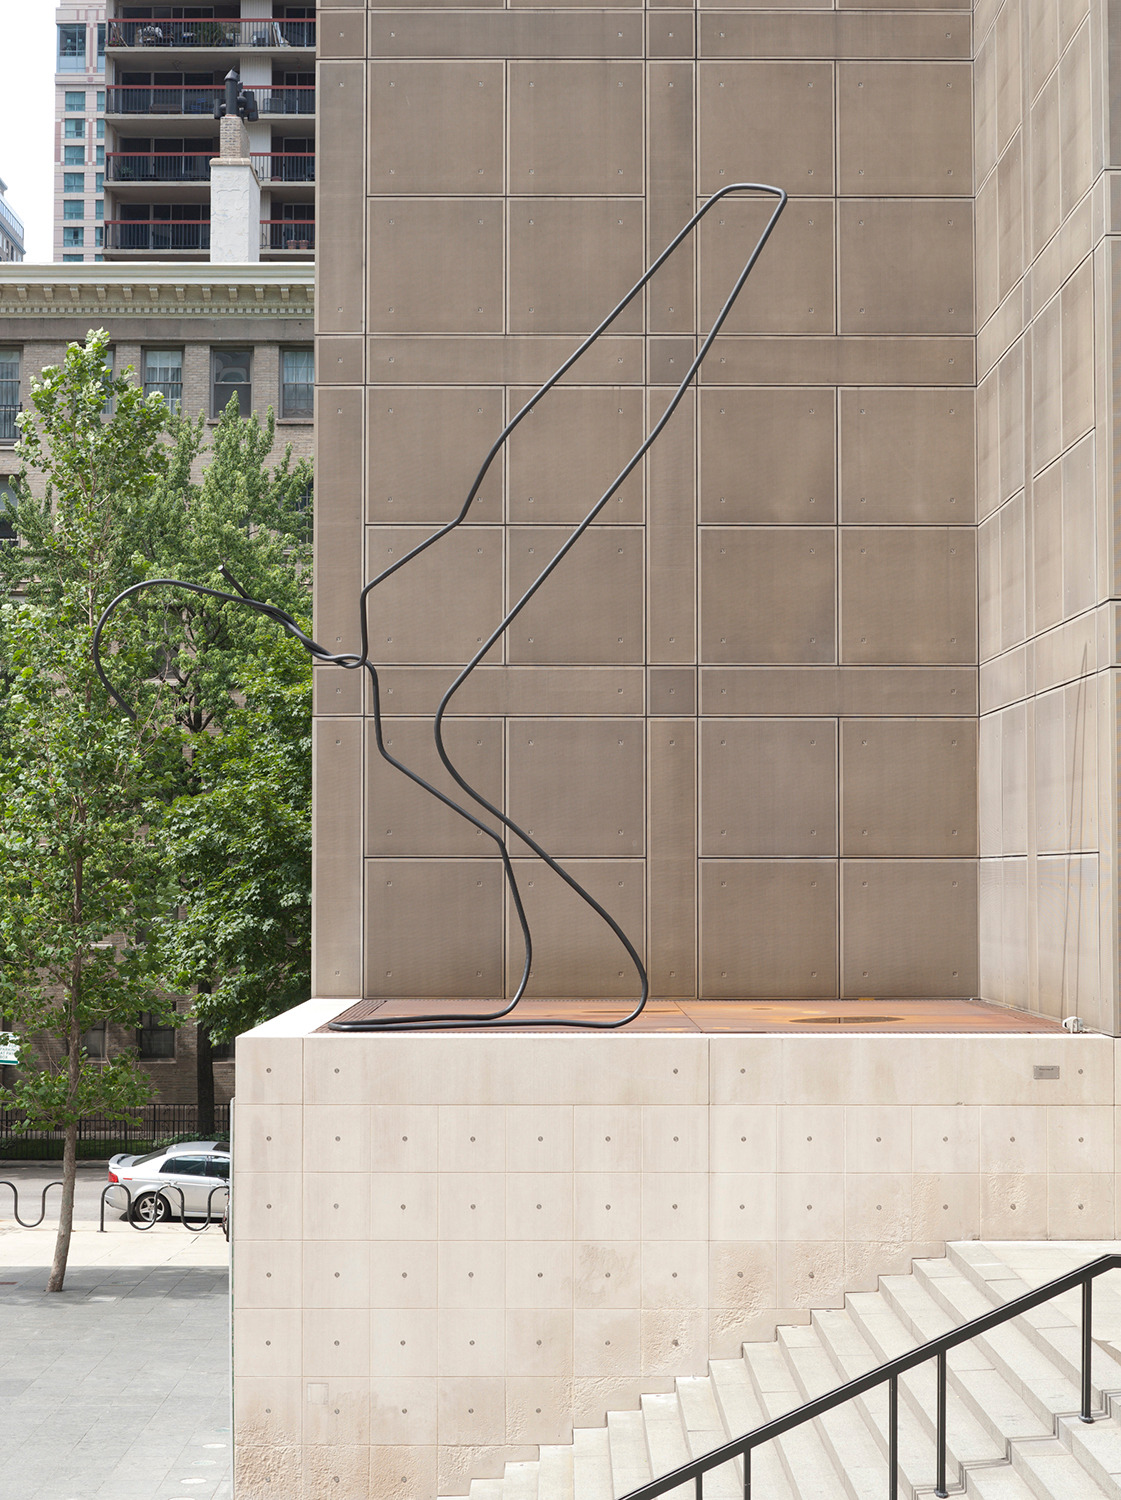 Mark Handforth, Blackbird, 2011, Steel, aluminum, enamel paint, 762 x 701 x 304 cm, Installation view, 'MCA Chicago Plaza Project', Museum of Contemporary Art, Chicago, 2011